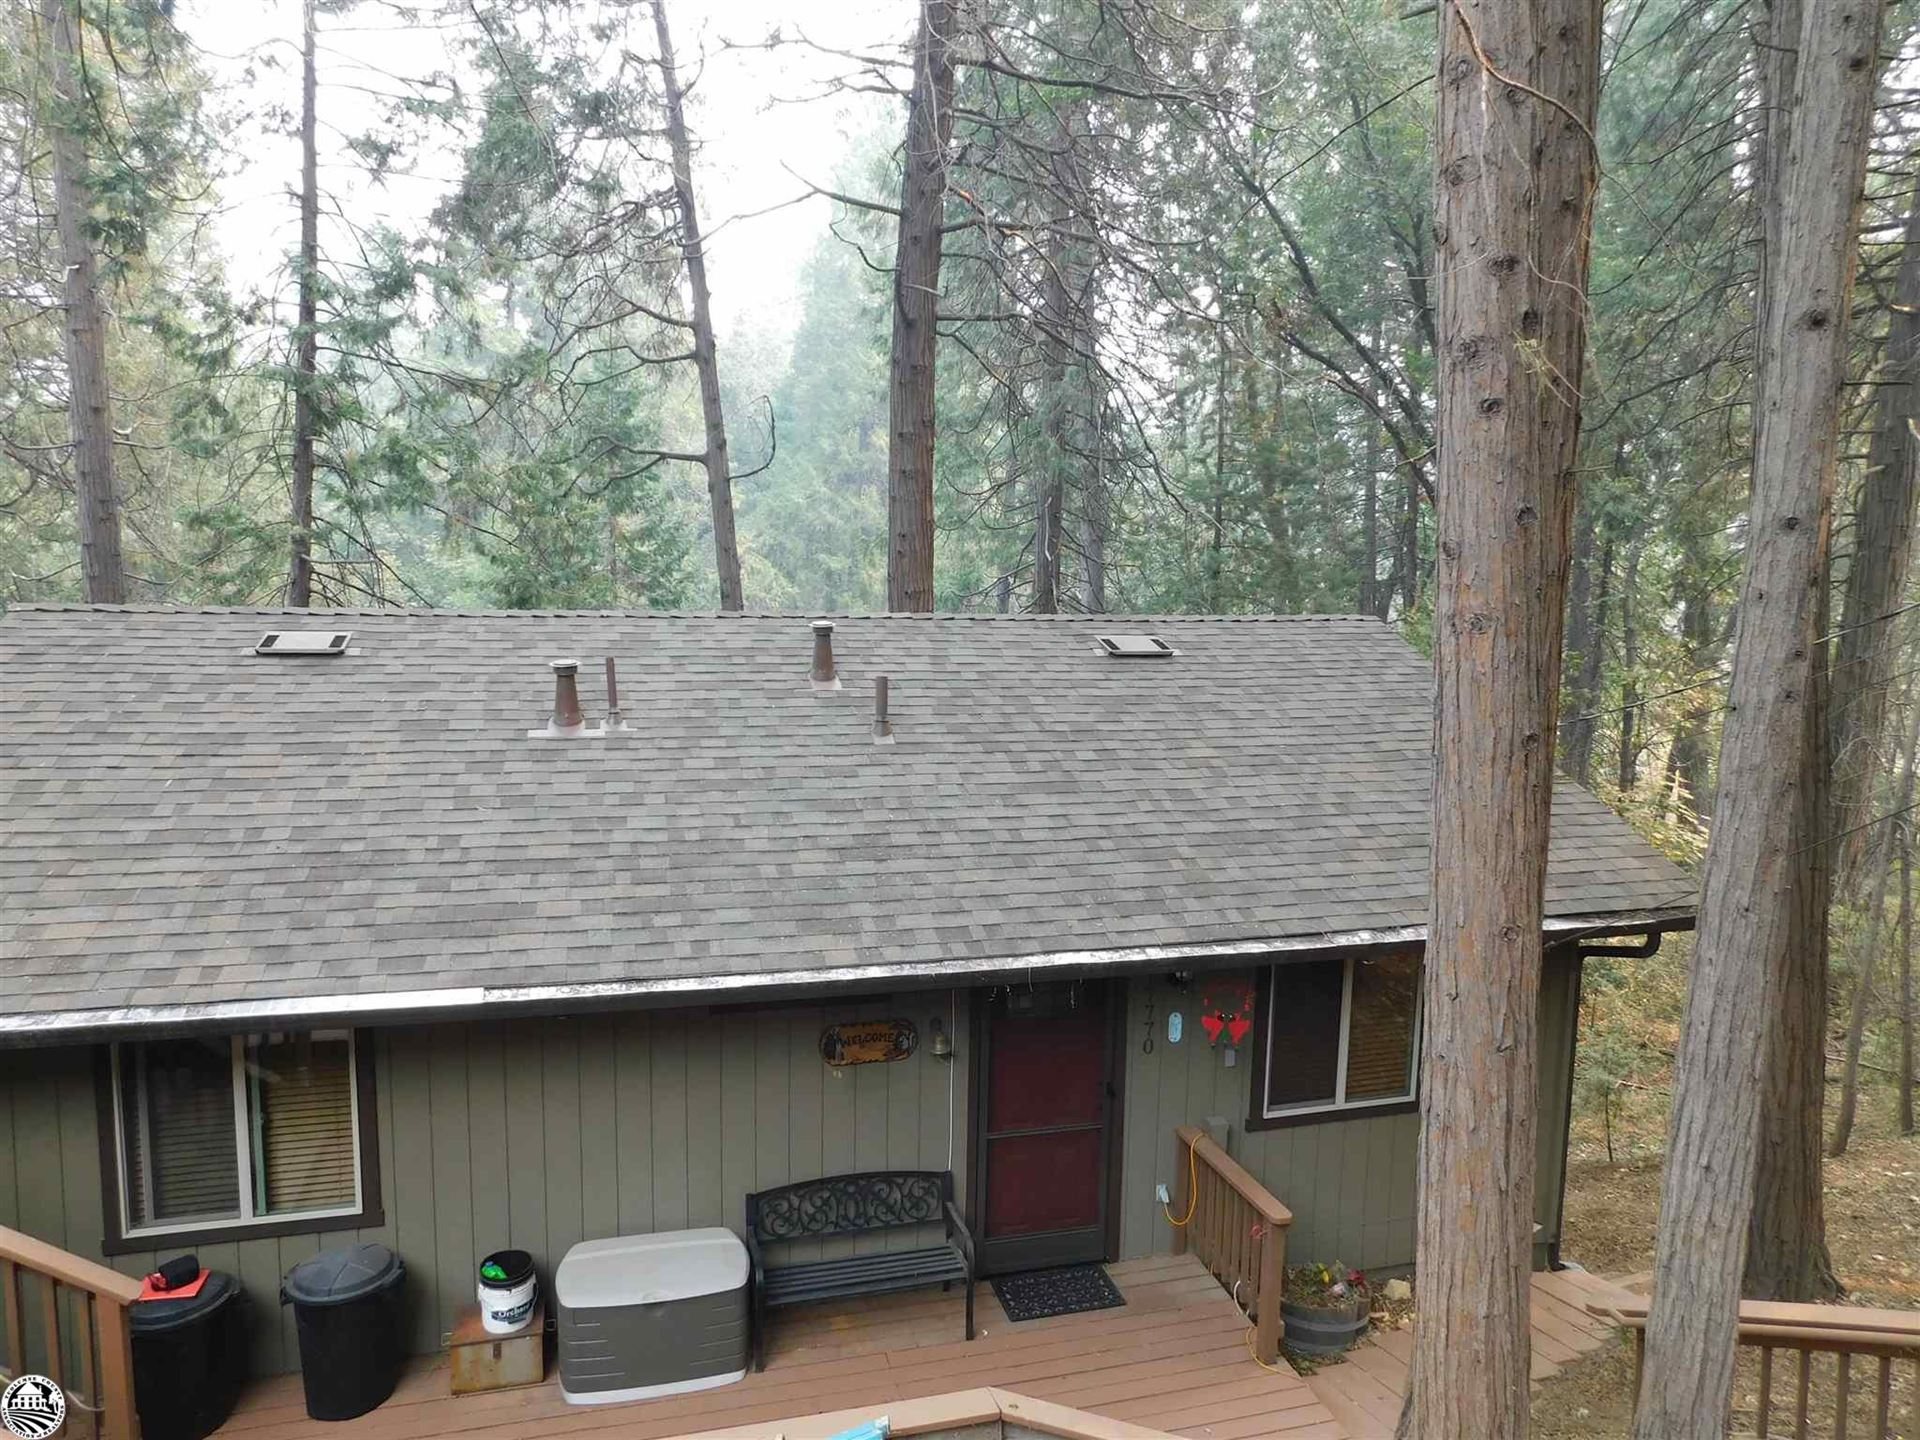 17770 Lucky Strike Trail Trail, Sonora, CA 95370 - MLS#: 20201467